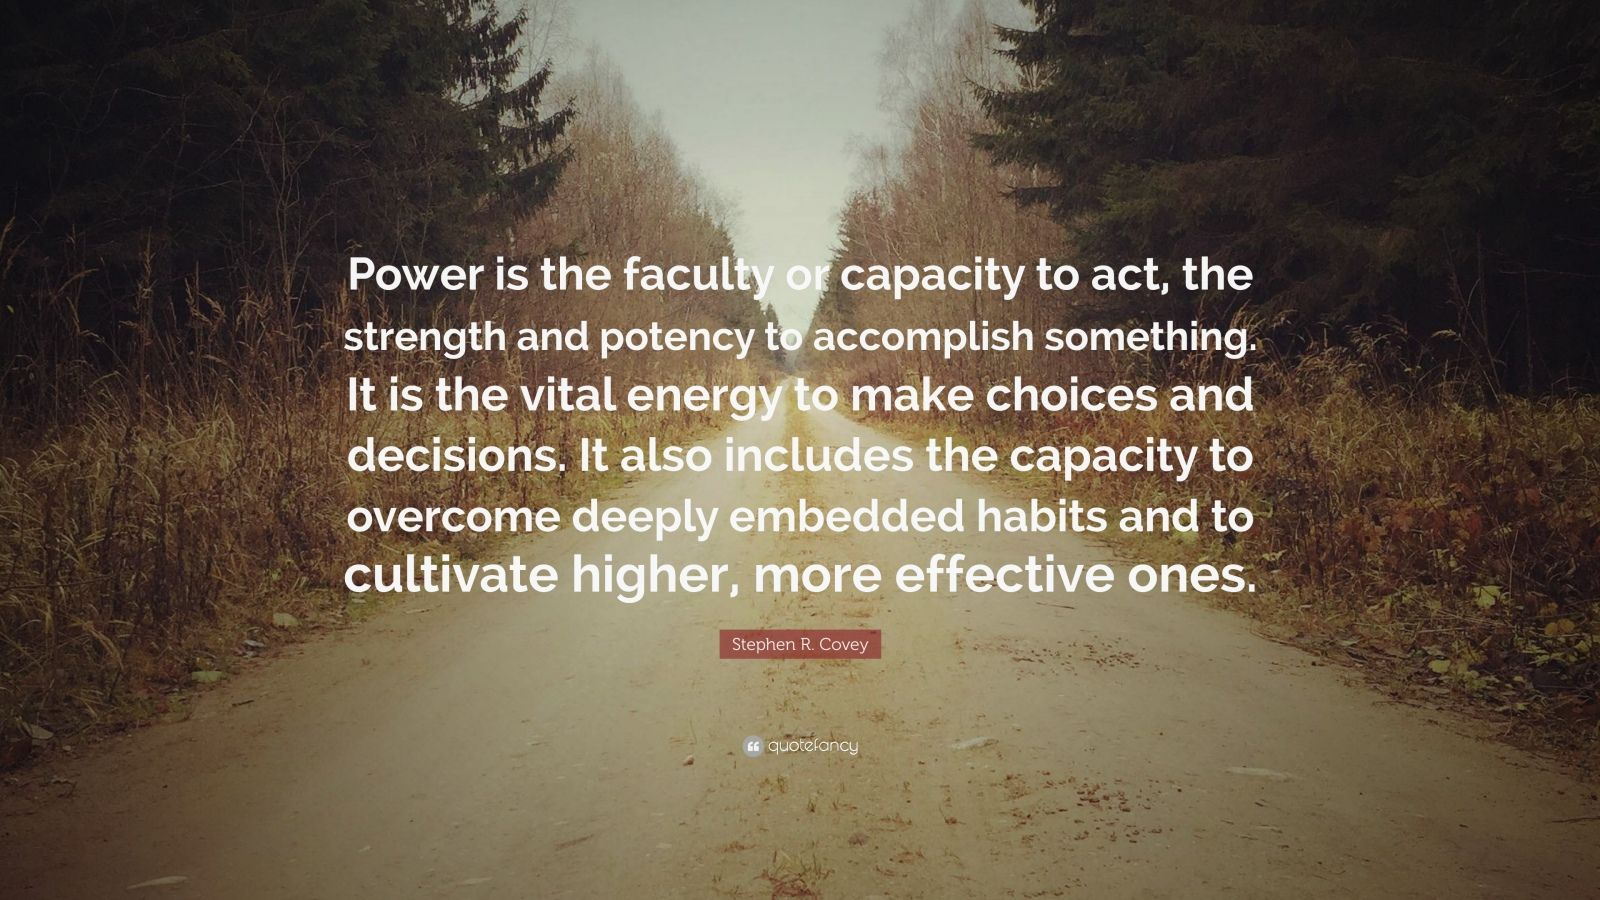 """Stephen R. Covey Quote: """"Power is the faculty or capacity to act, the strength and potency to accomplish something. It is the vital energy to make choices and decisions. It also includes the capacity to overcome deeply embedded habits and to cultivate higher, more effective ones."""""""